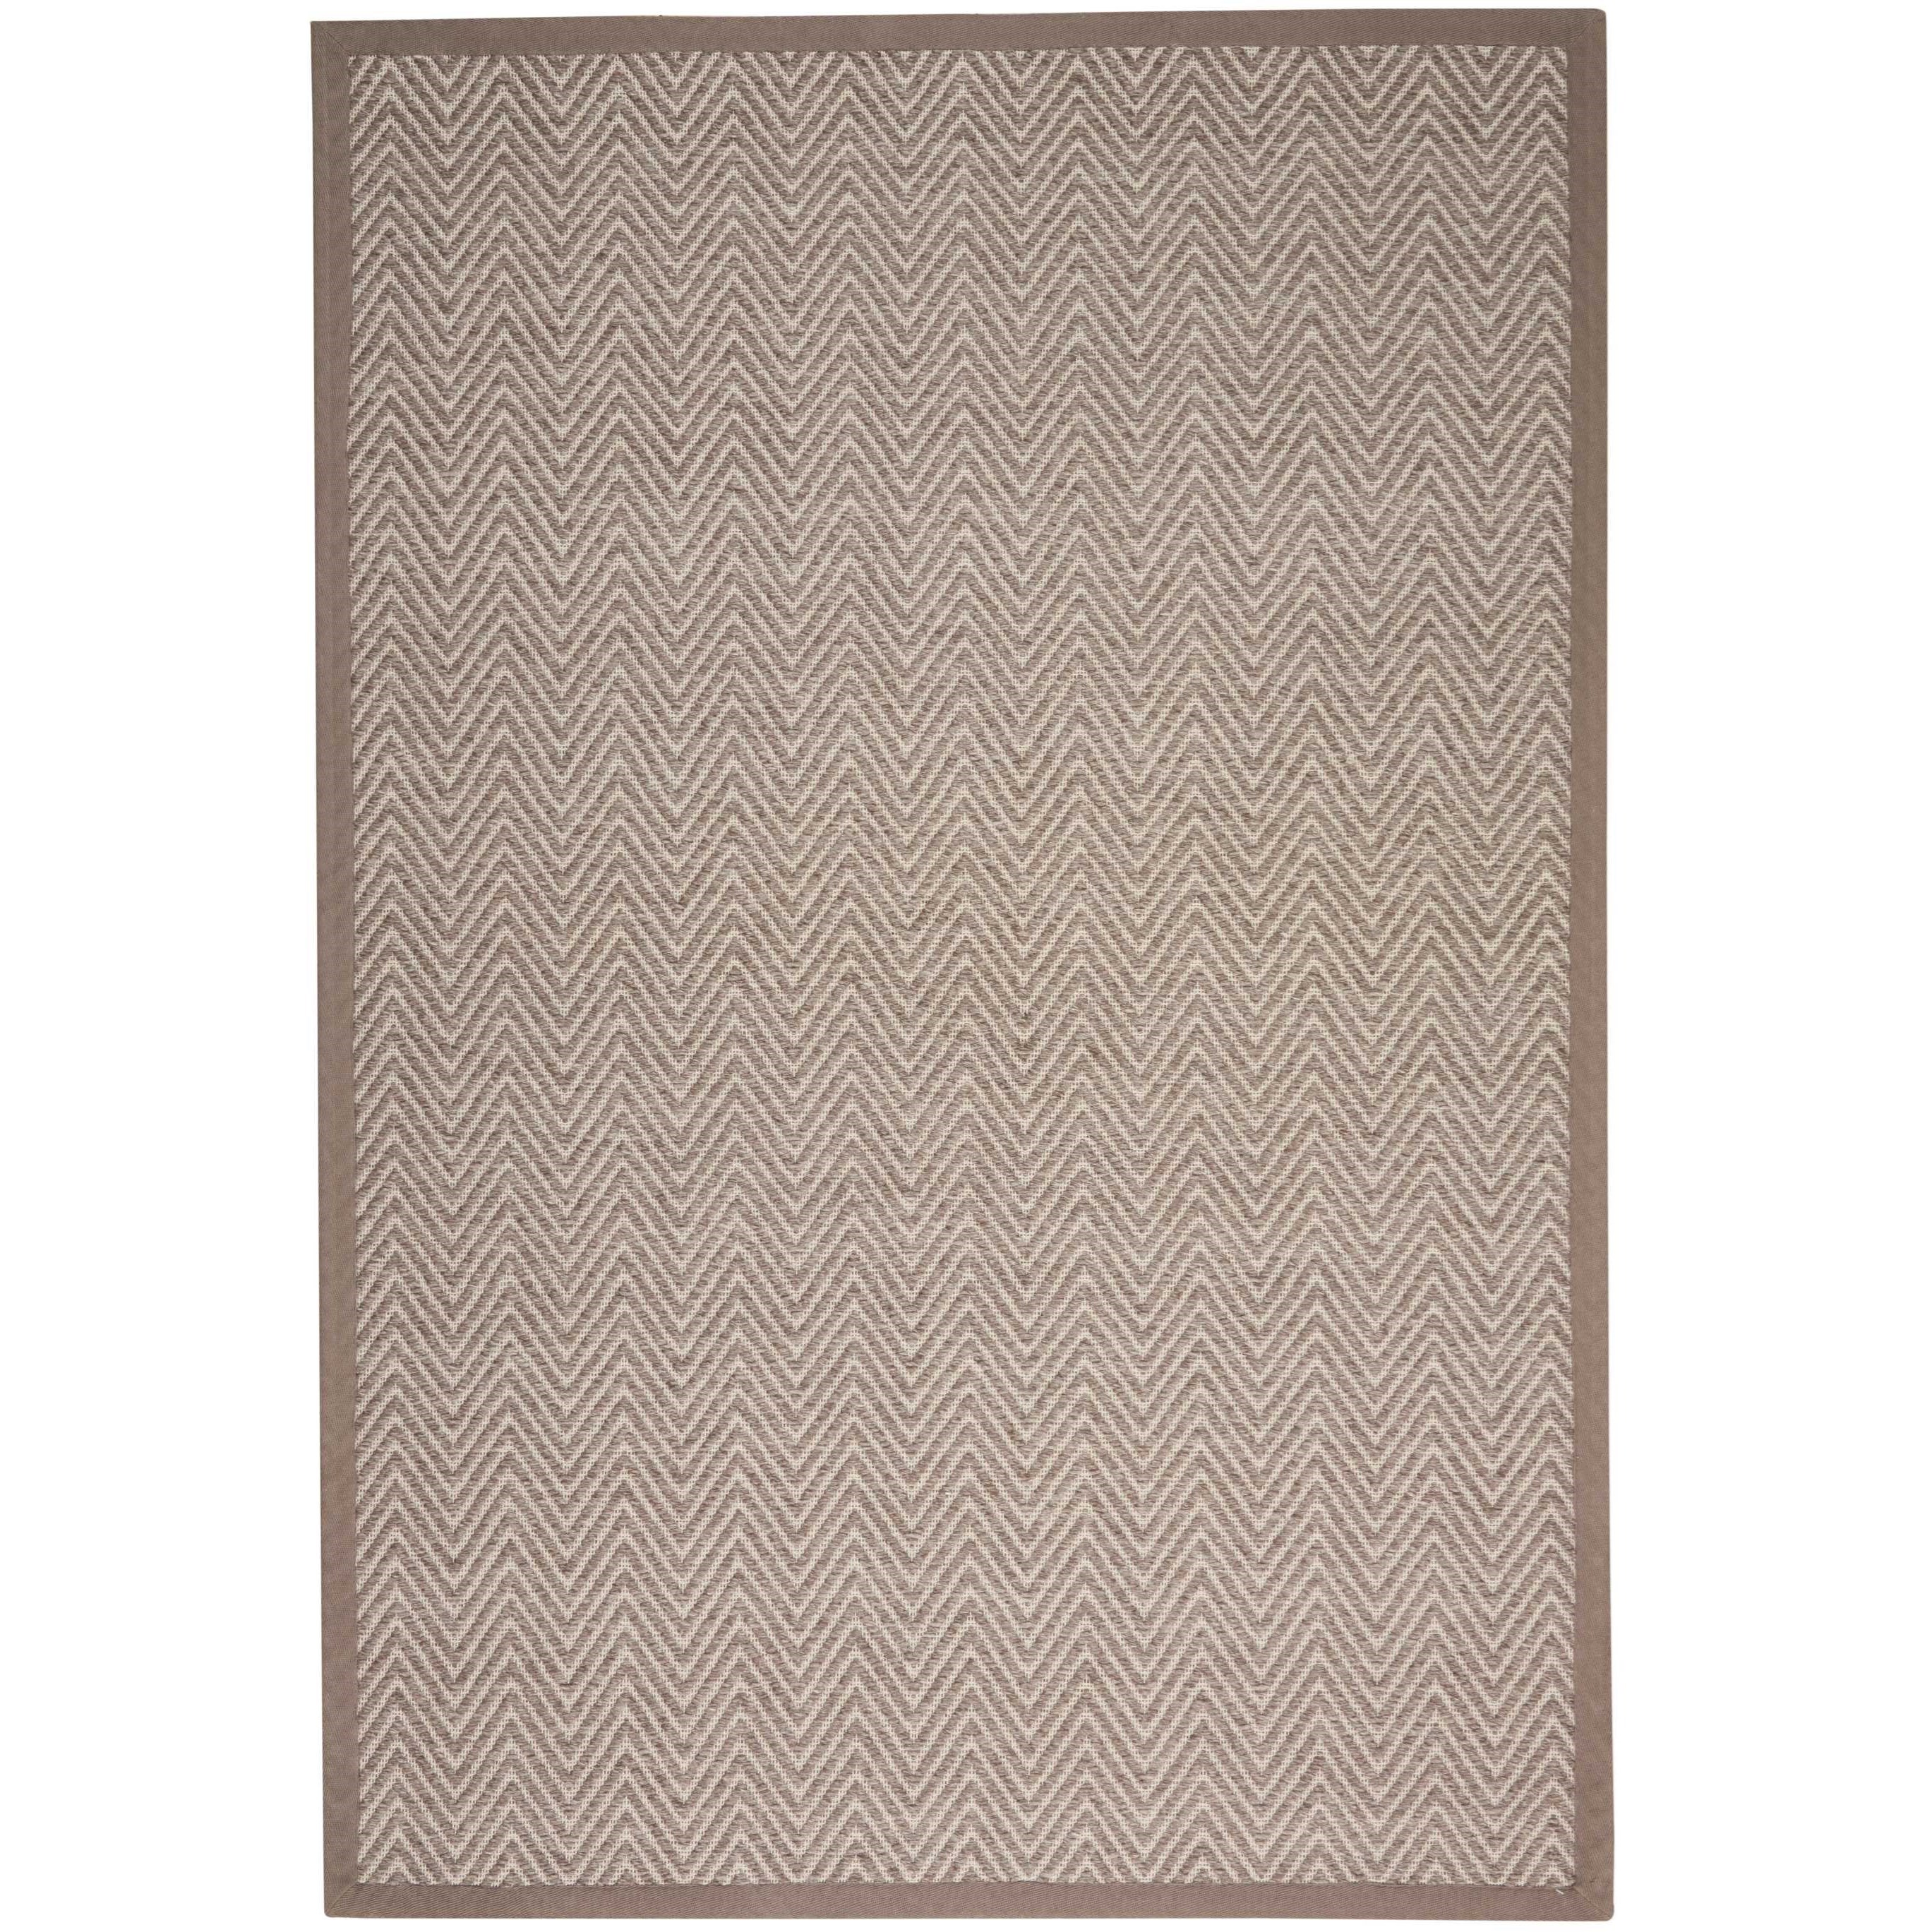 """Kiawiah 5'X7'6""""  Rug by Nourison at Home Collections Furniture"""